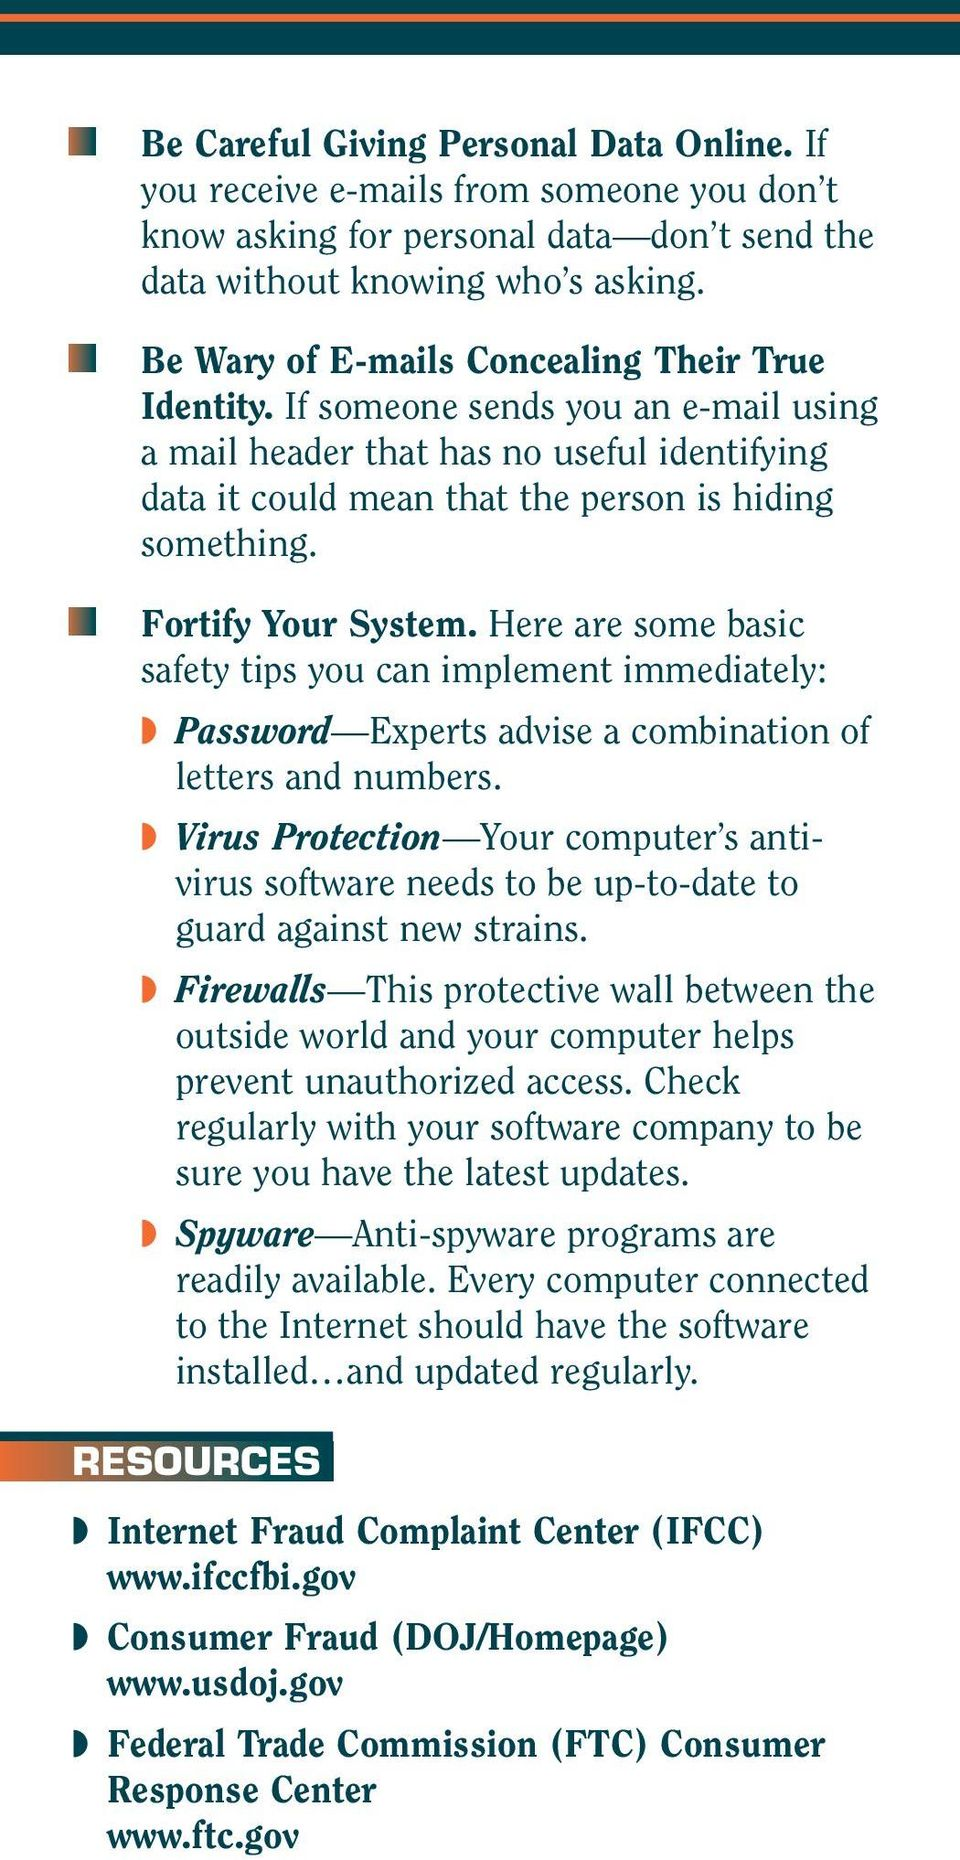 Fortify Your System. Here are some basic safety tips you can implement immediately: Password Experts advise a combination of letters and numbers.